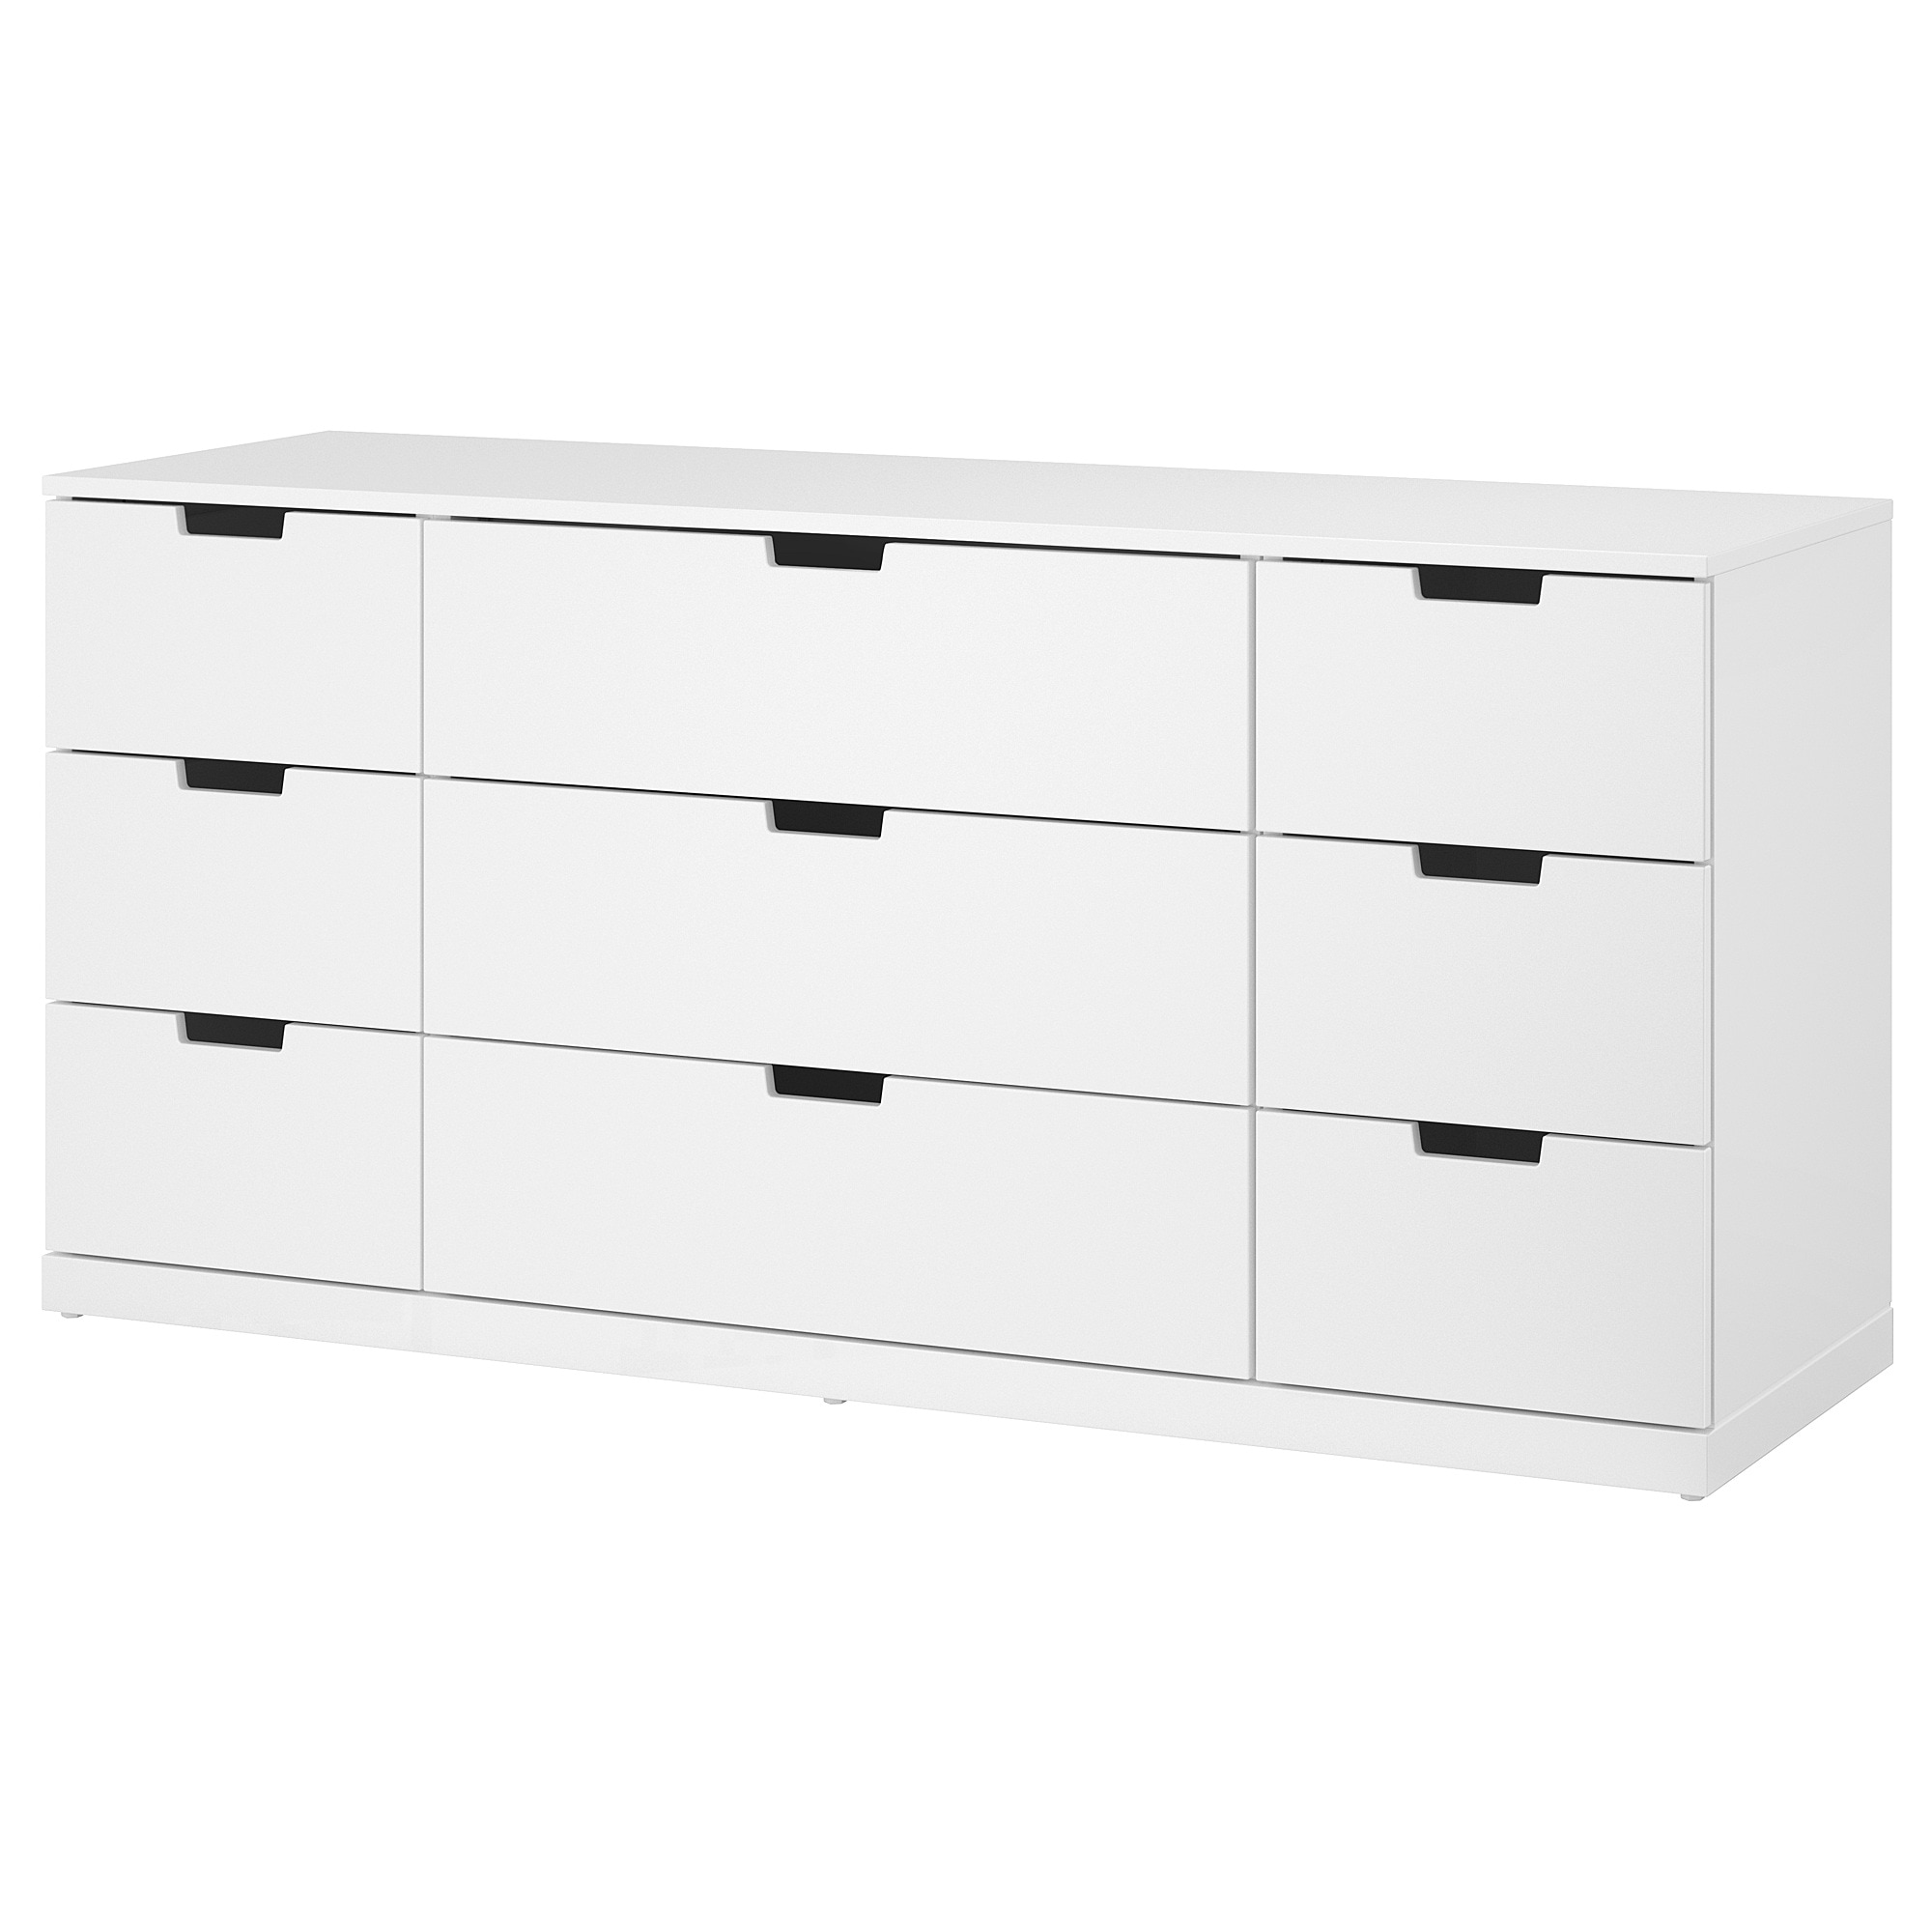 Chests Of Drawers   IKEA